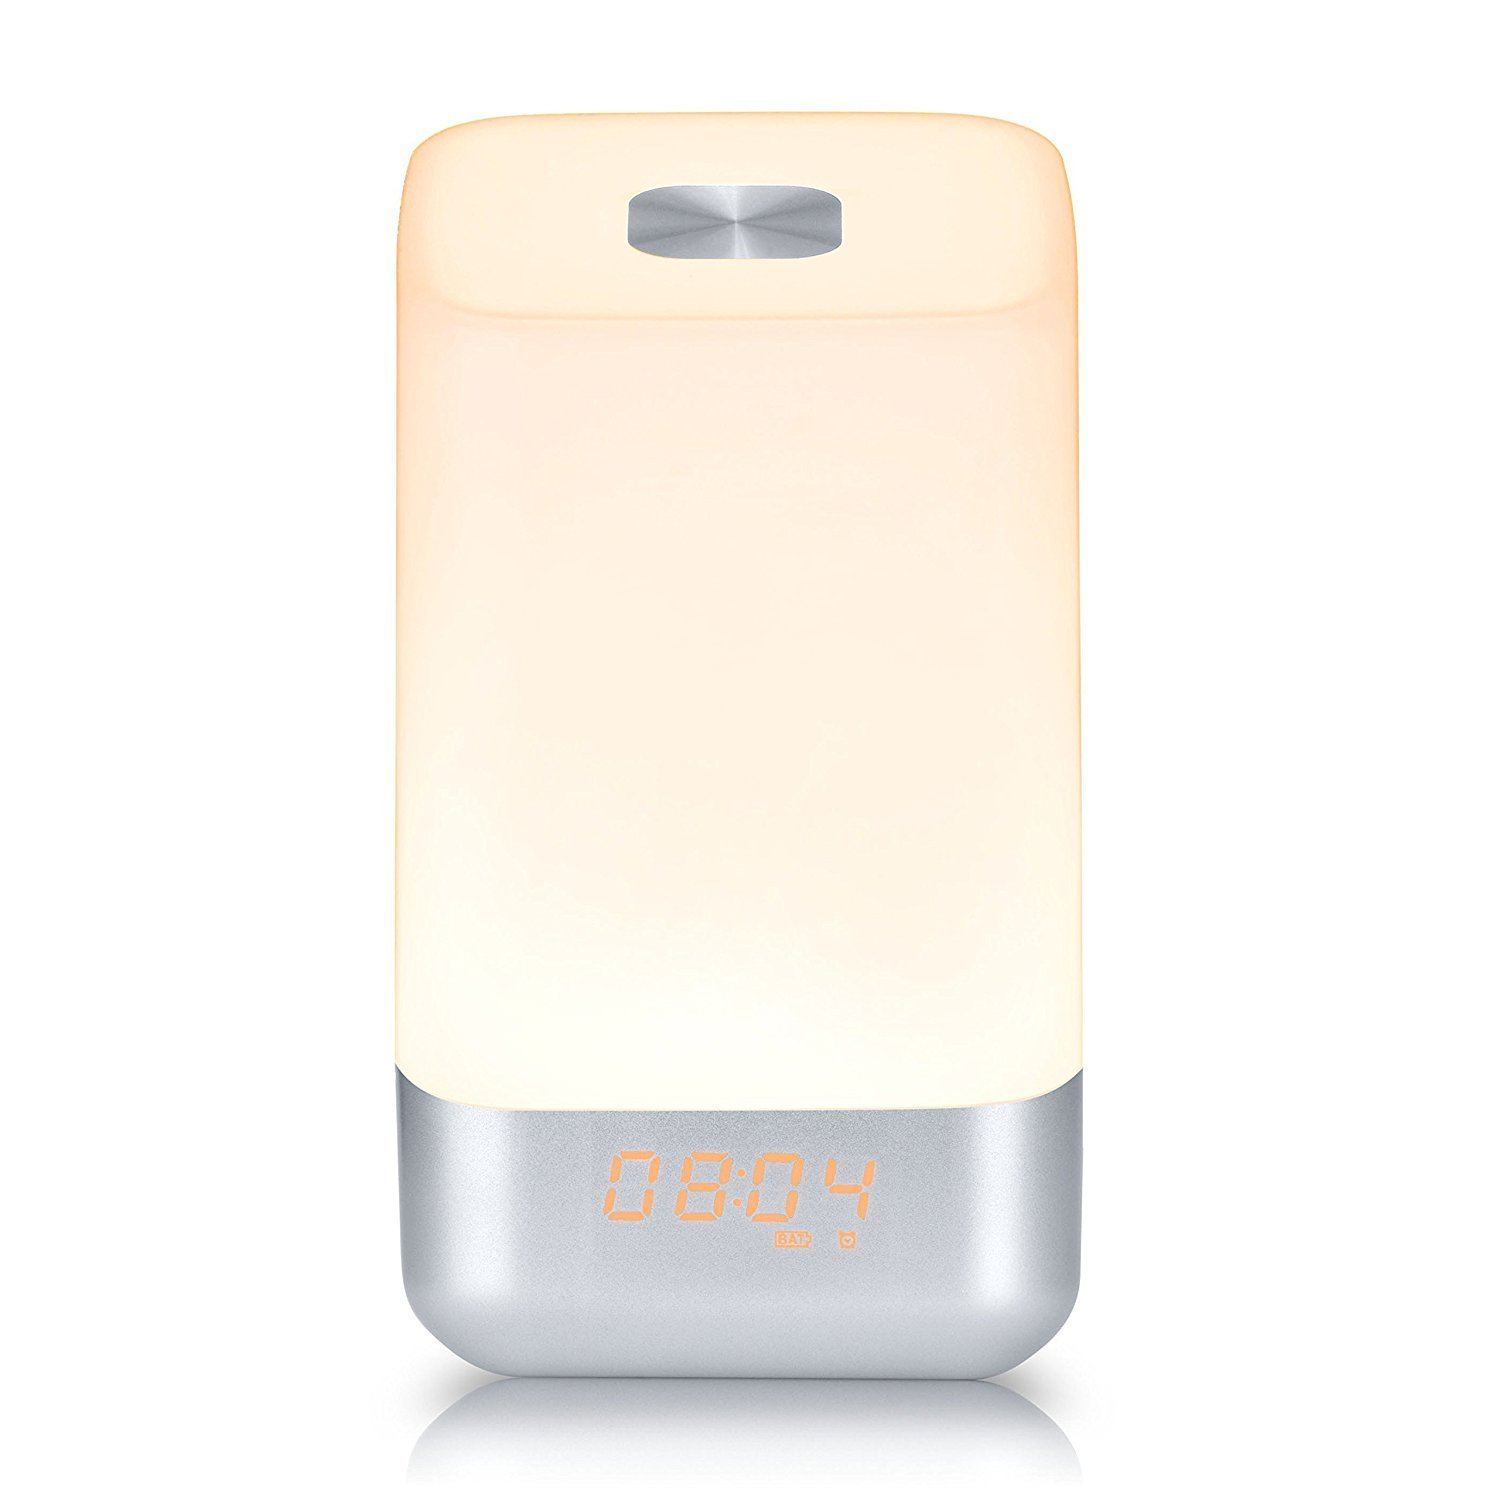 Light Therapy Lamps,Wake Up Light Alarm Clock with Sunrise Simulation and 5 Natural Sounds,LED USB Bedside Lamp,Rechargeable,Touch Sensor Night Light with 3 Brightness,12/24 hour,Veholion MY-3